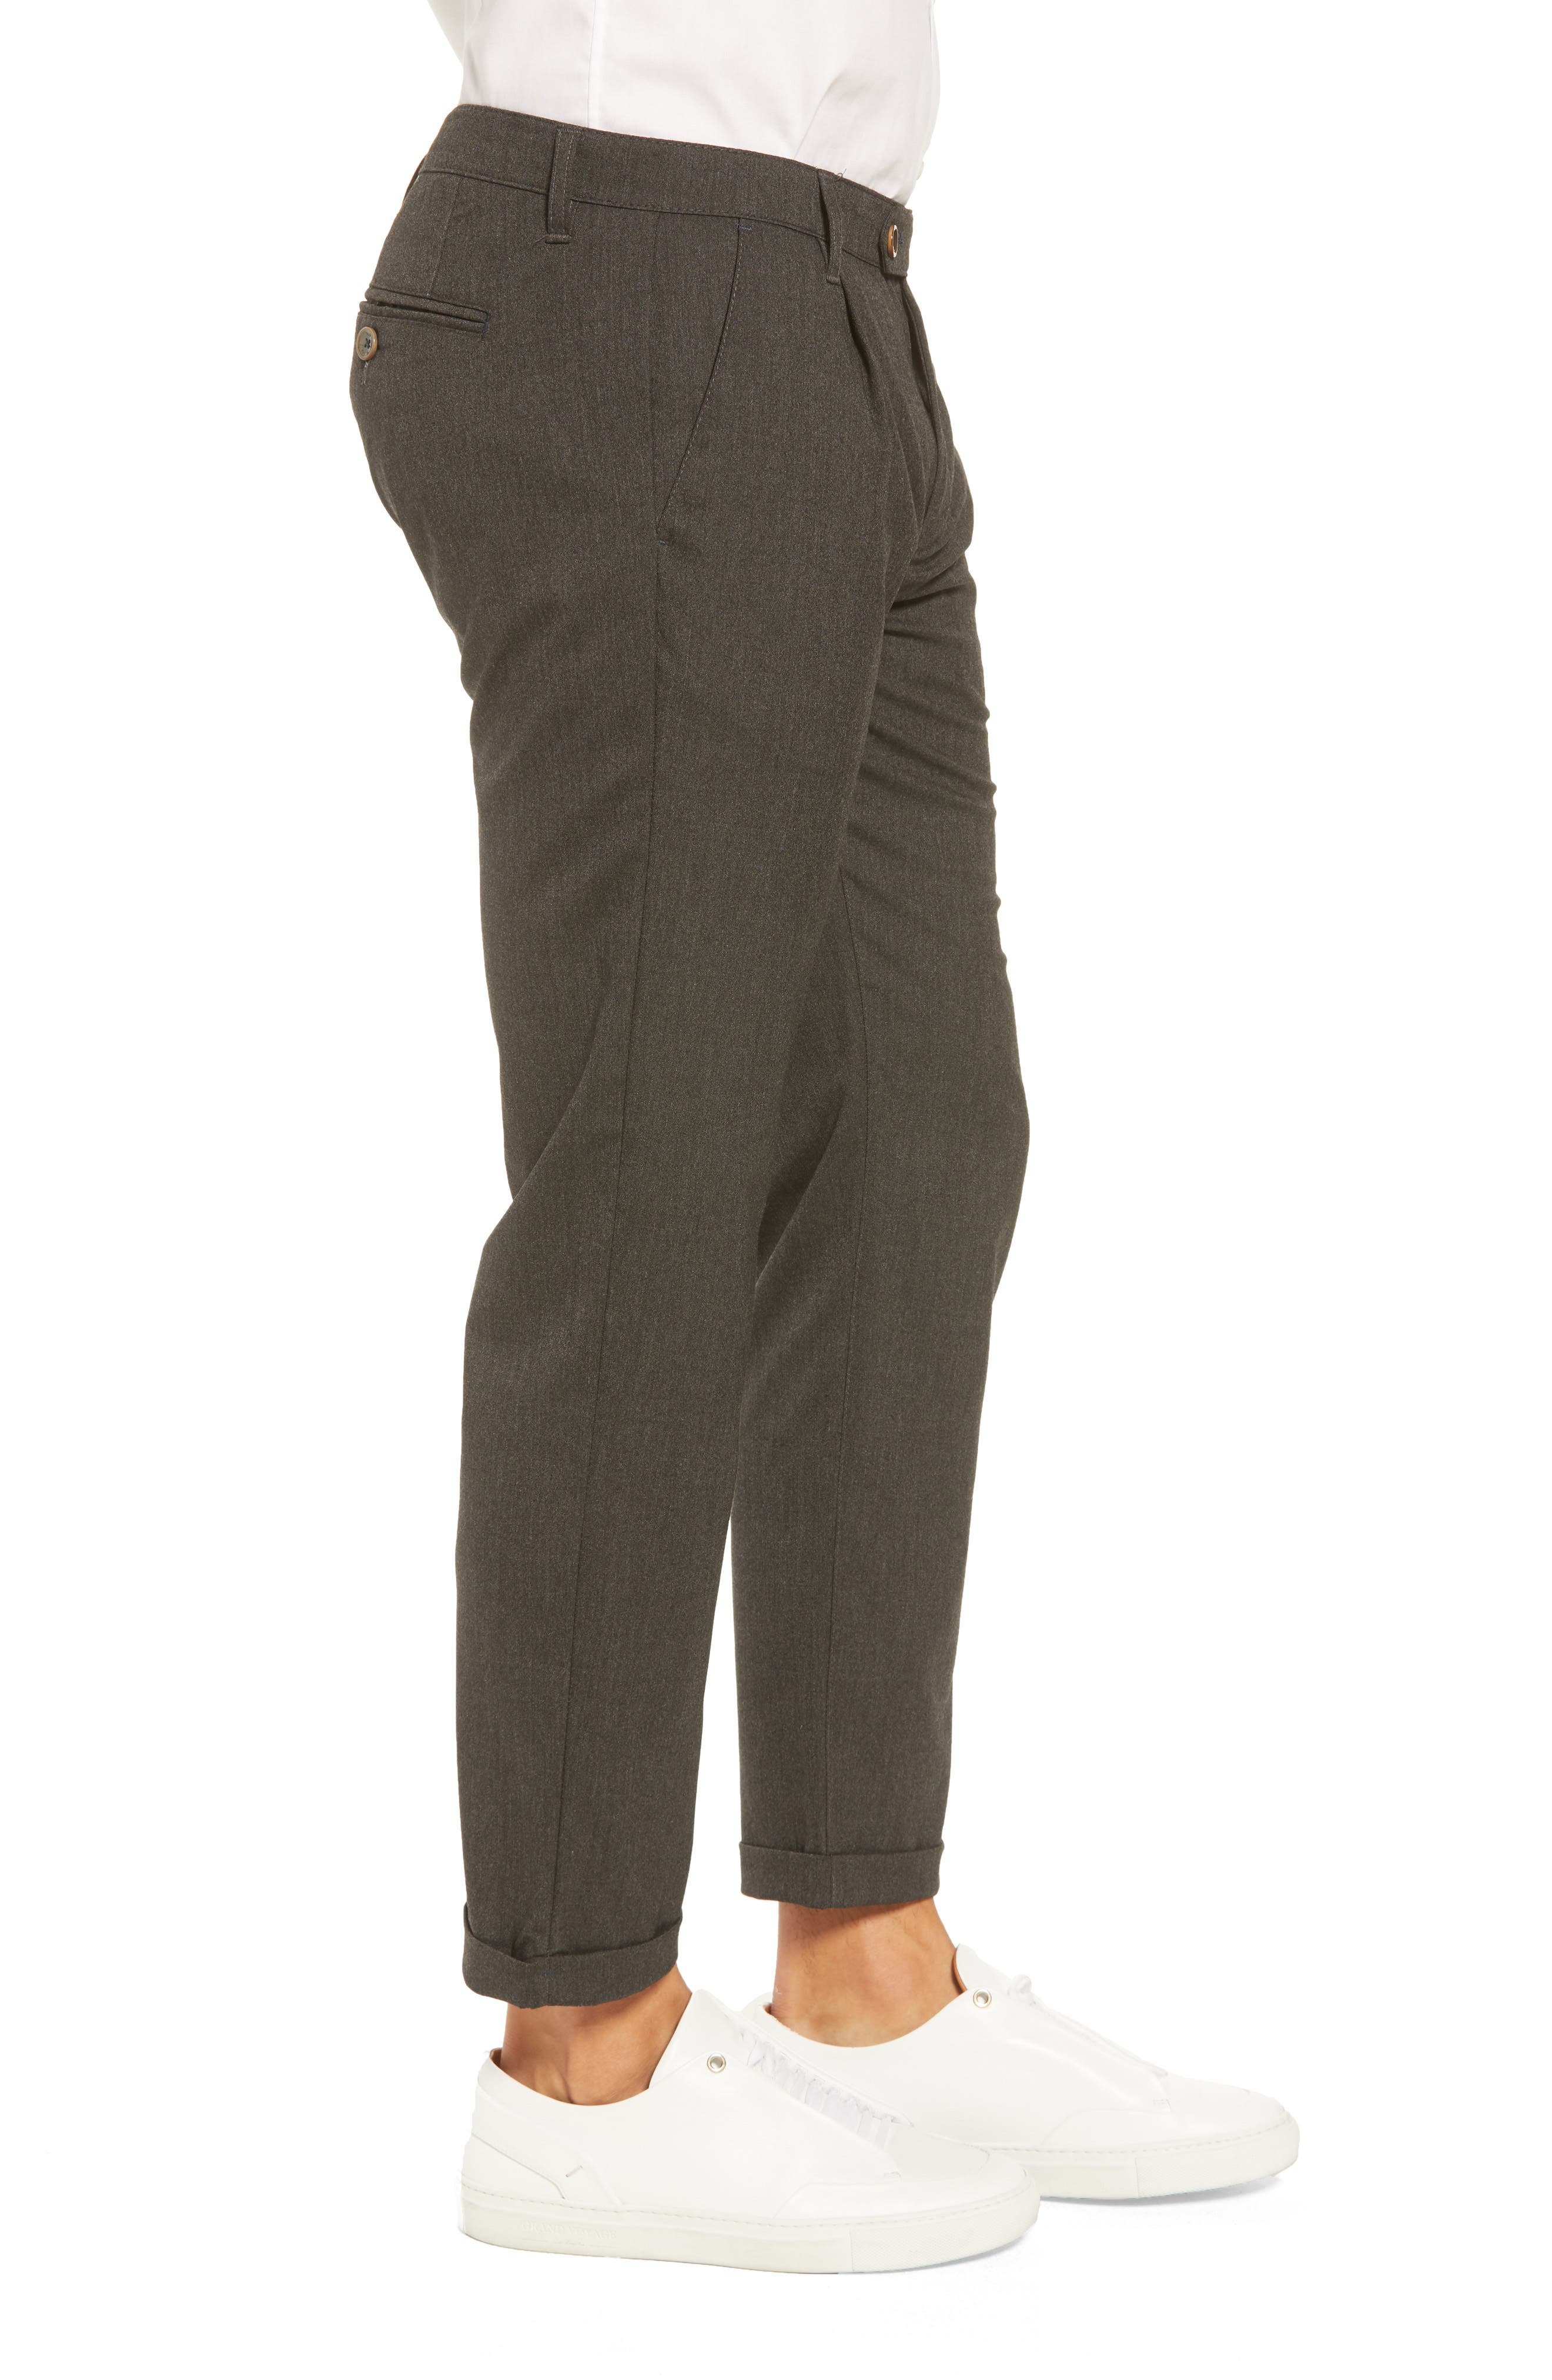 TED BAKER LONDON,                             Champi Pleated Cropped Pants,                             Alternate thumbnail 3, color,                             001